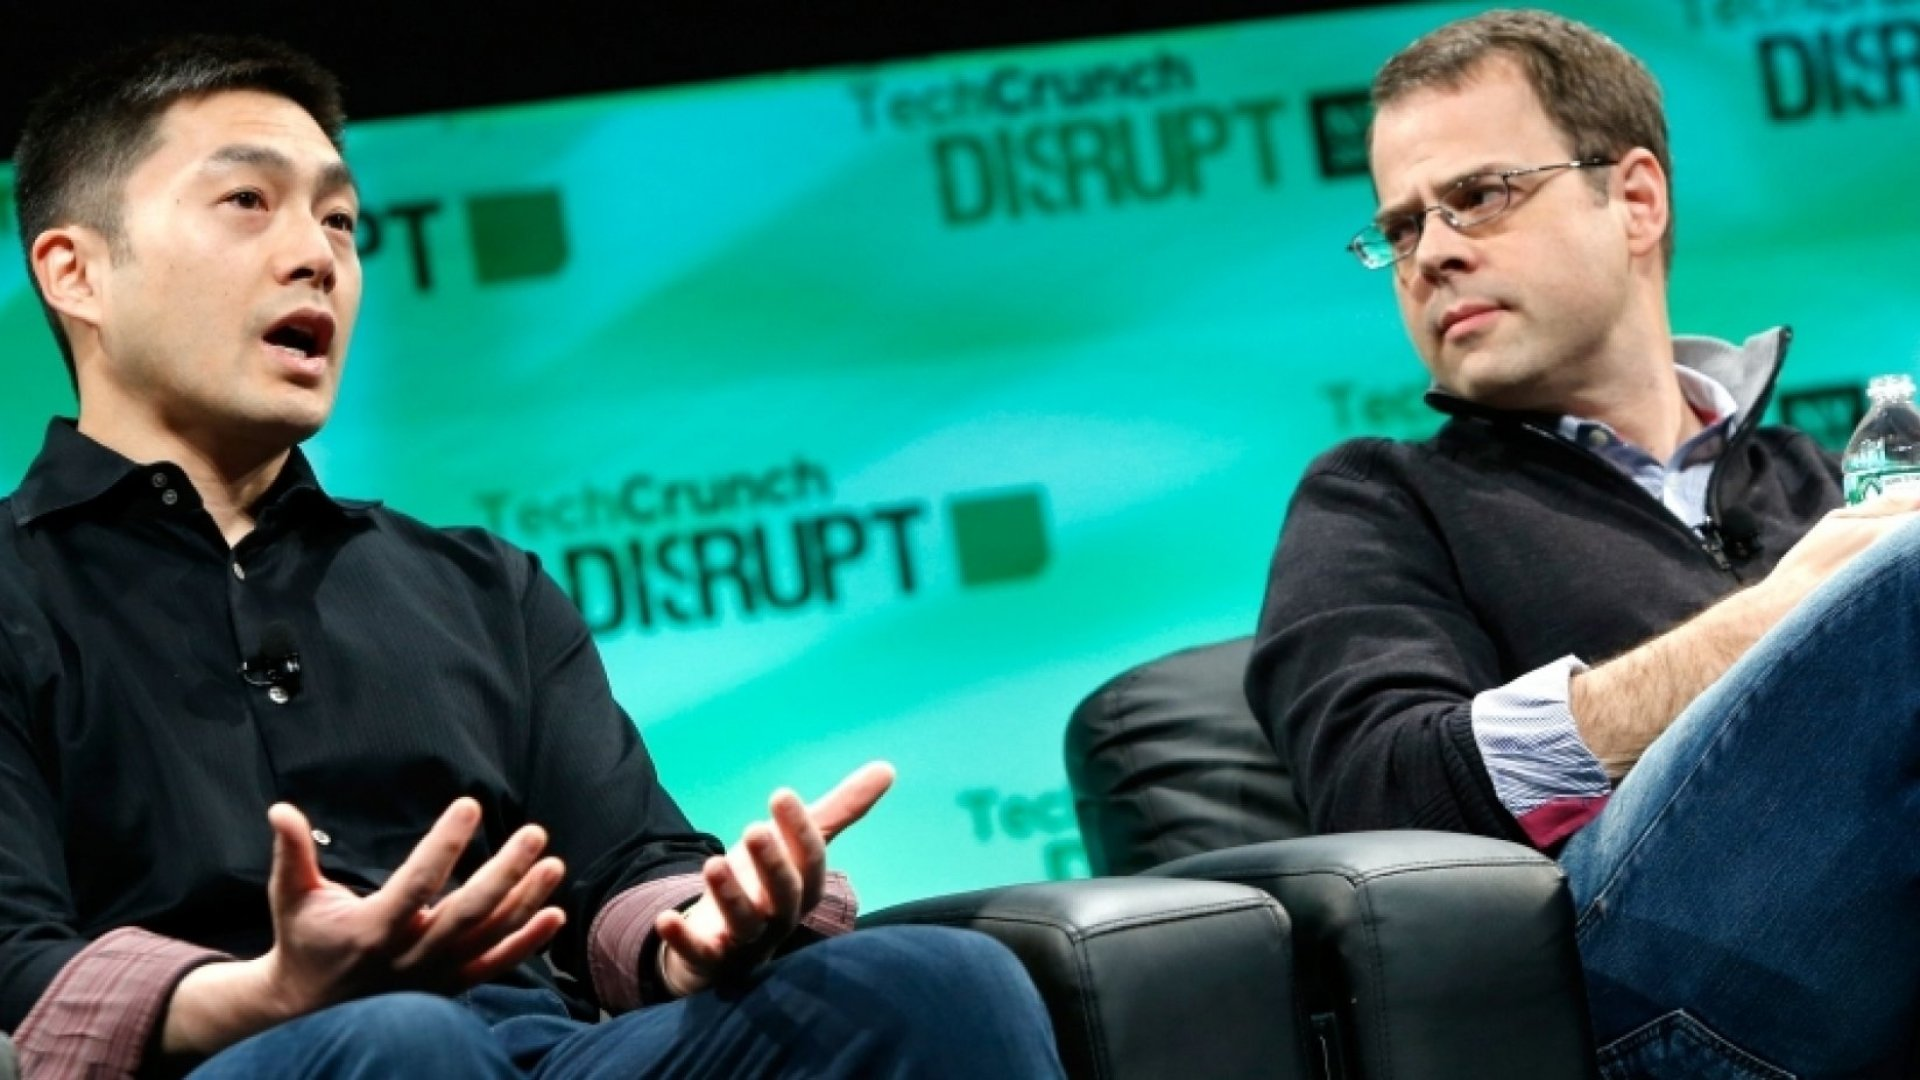 The 31 Venture Capitalists Who Secretly Decide Our Future